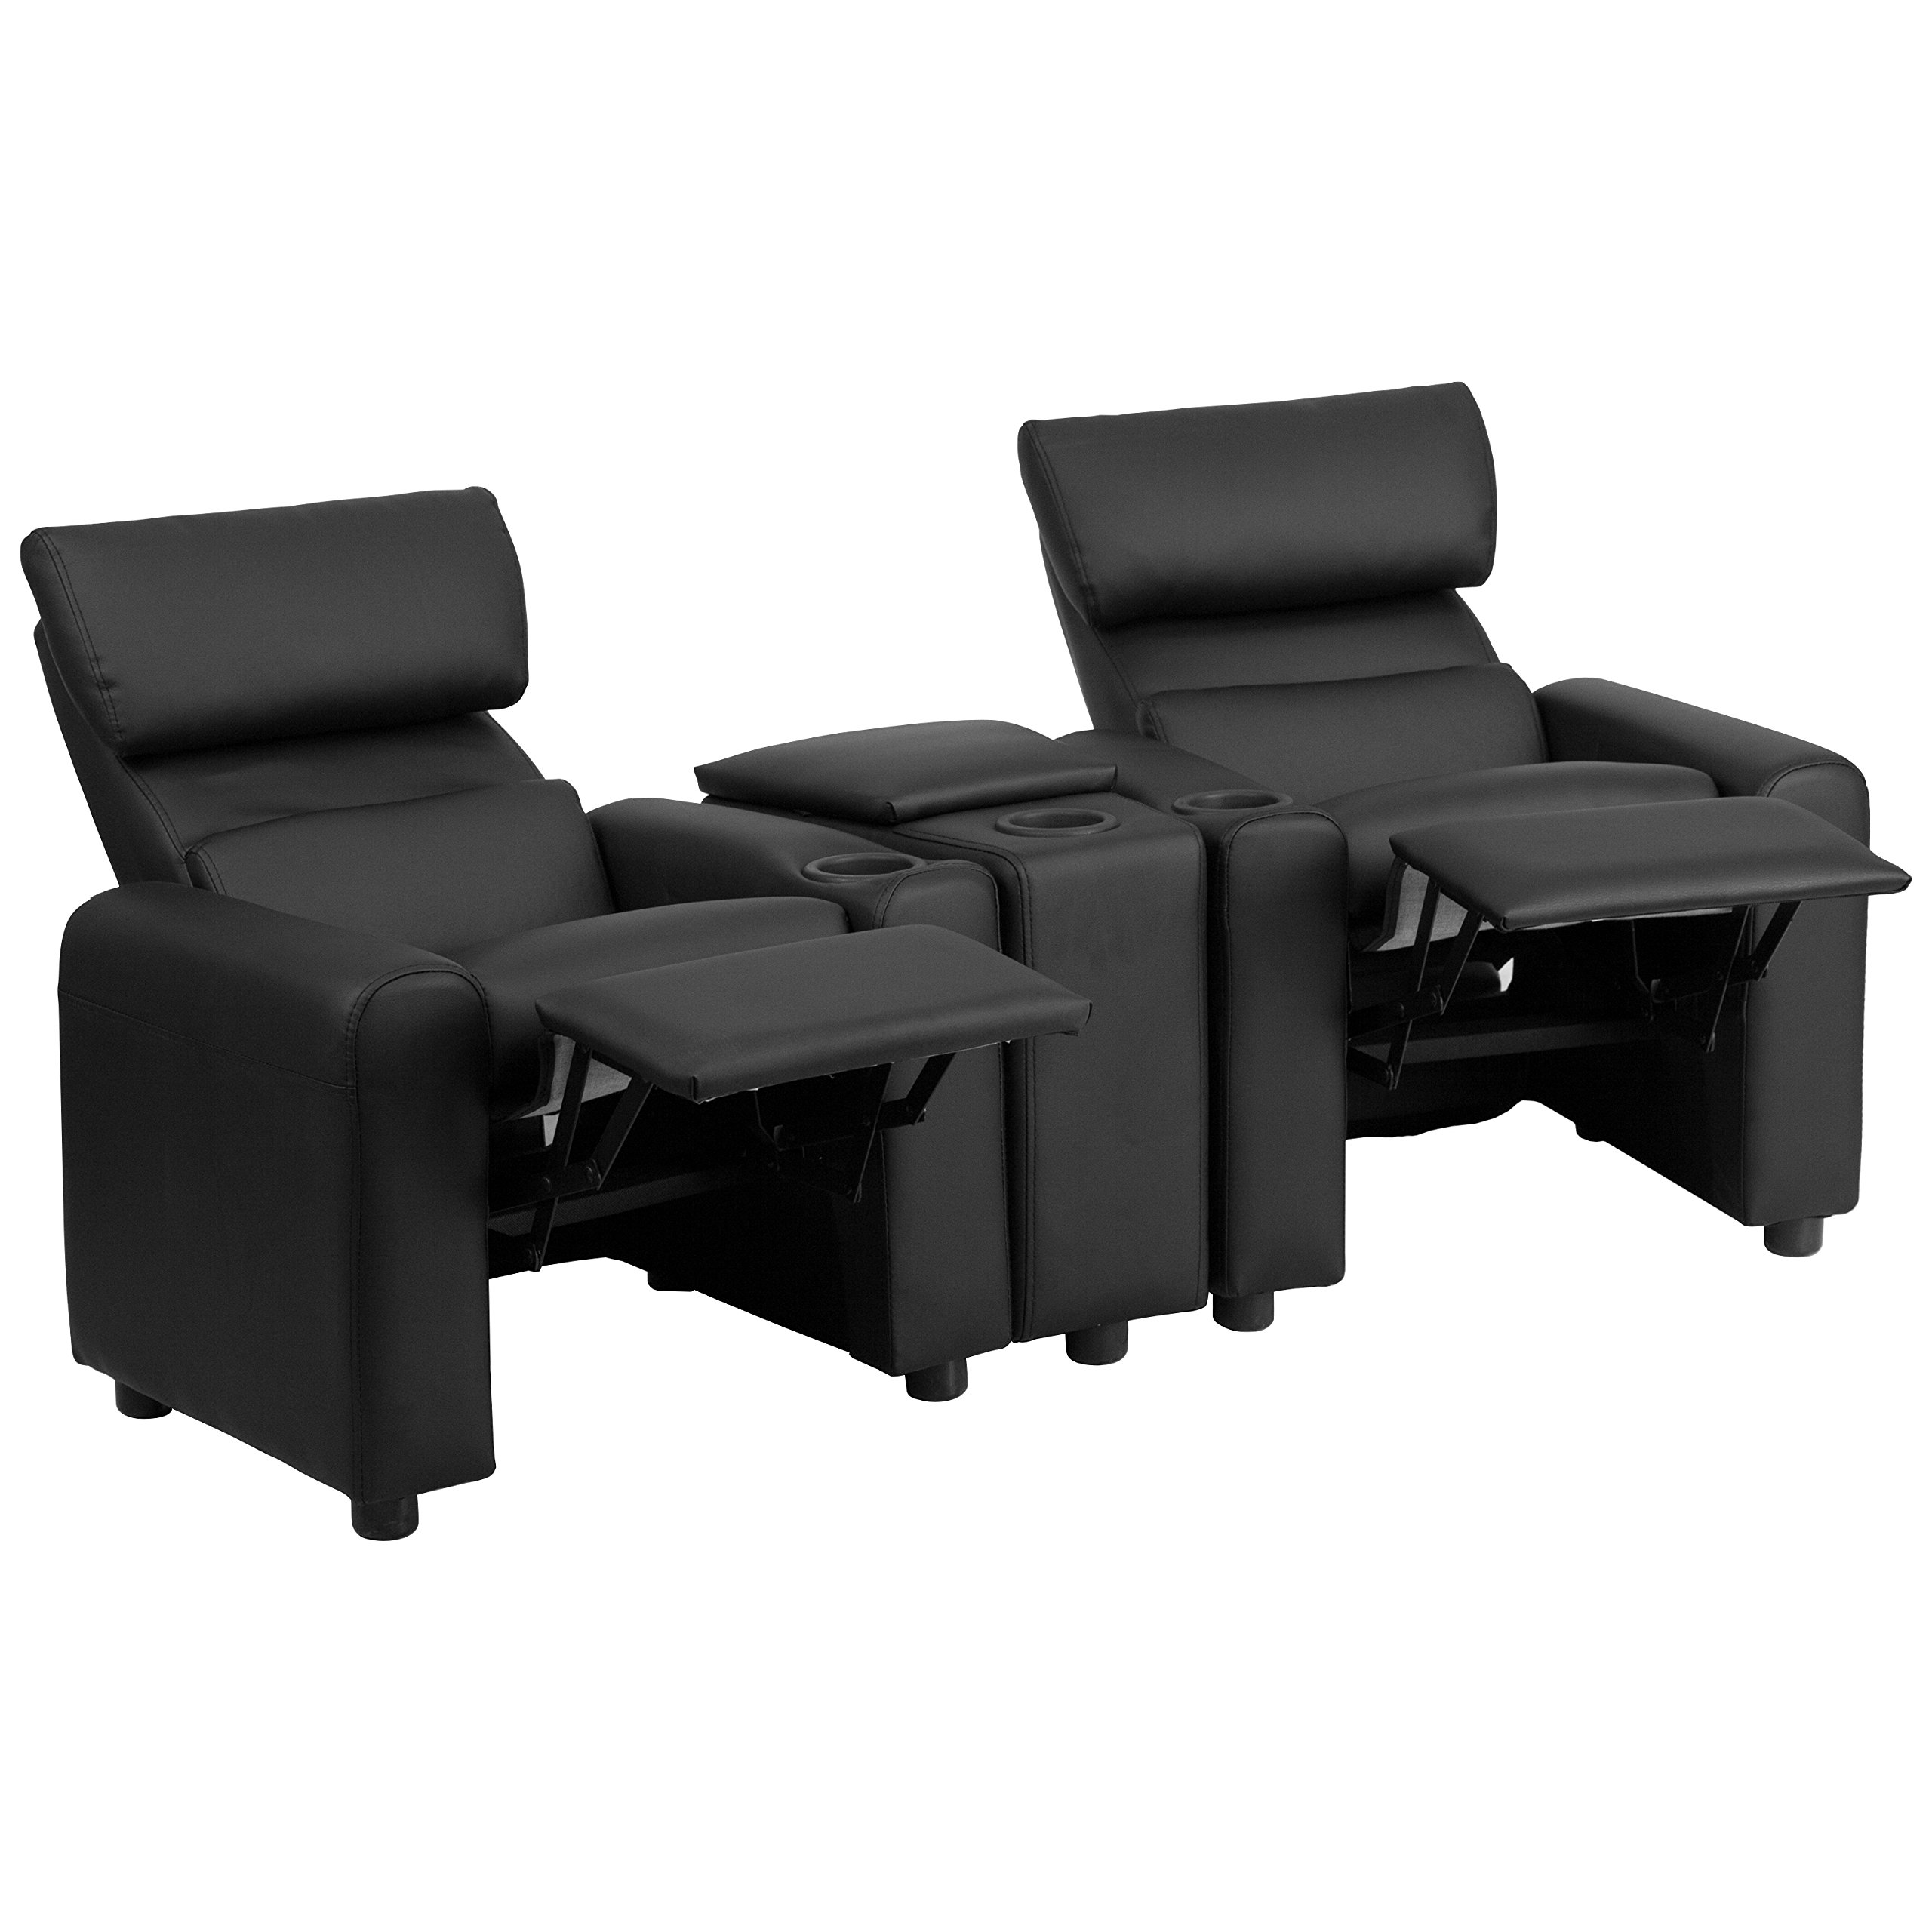 Flash Furniture Kid's Black Leather Reclining Theater Seating with Storage Console by Flash Furniture